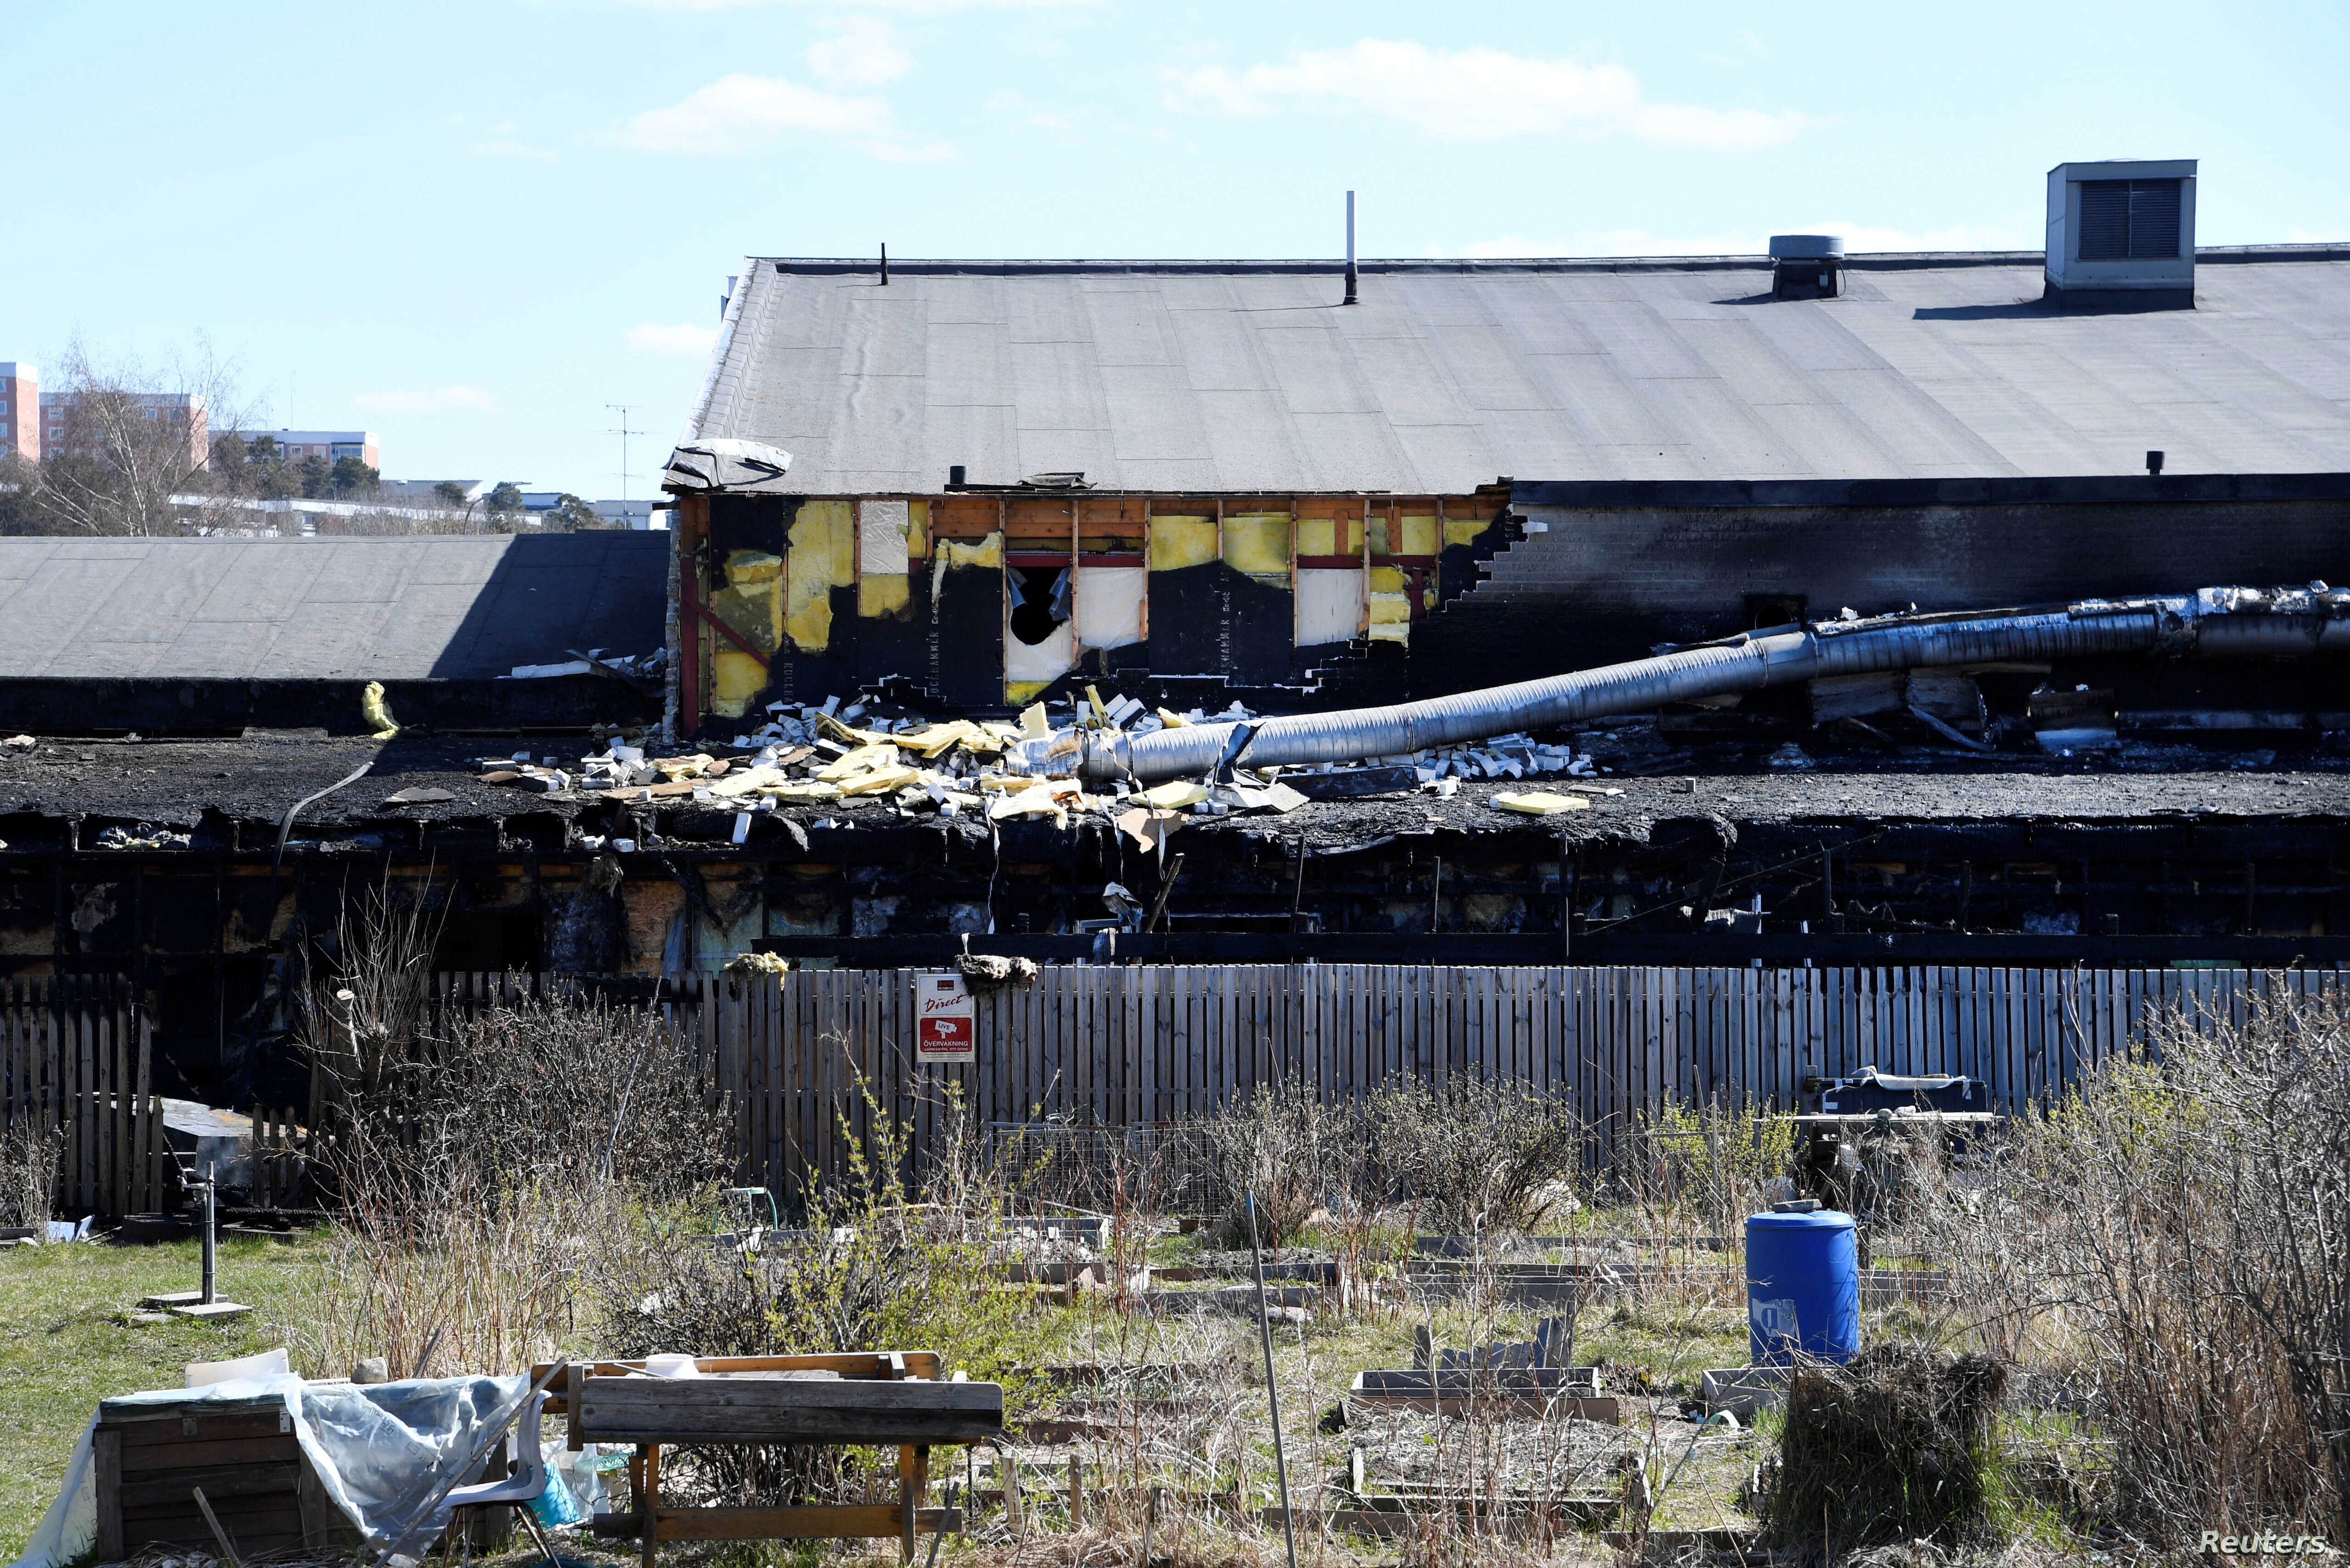 Parts of the Imam Ali mosque in Jarfalla north of Stockholm, Sweden has been destroyed in a fire during the night of May 1, 2017.